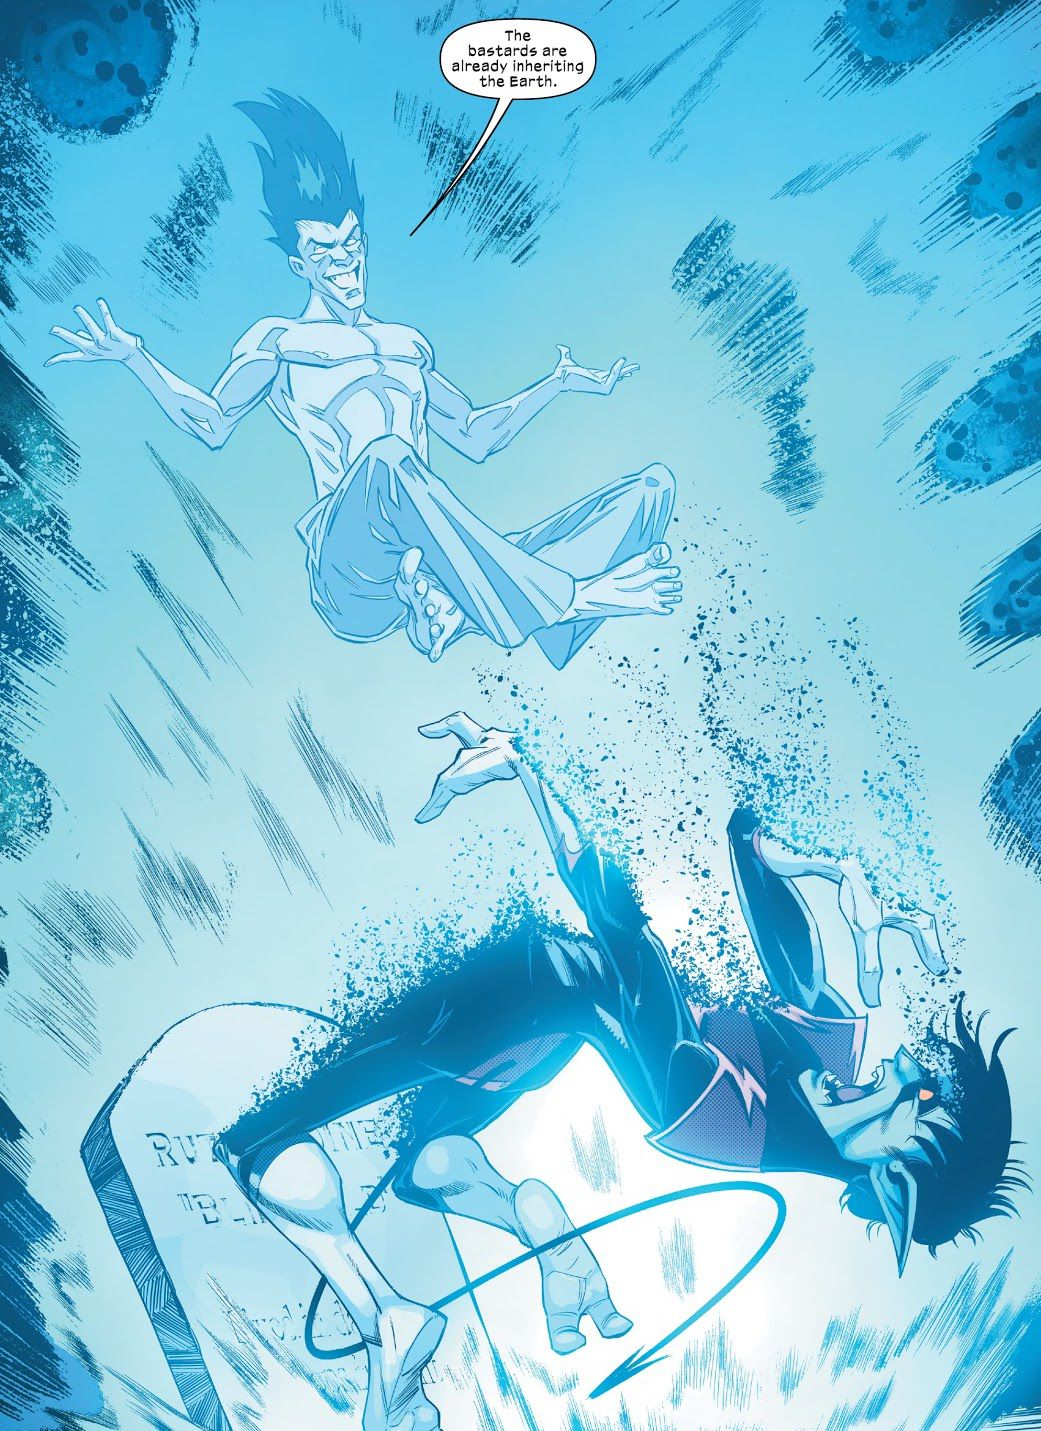 Legion levitates above Nightcrawler as he renders the latter's body into atoms in Way of X #1, Marvel Comics (2021).